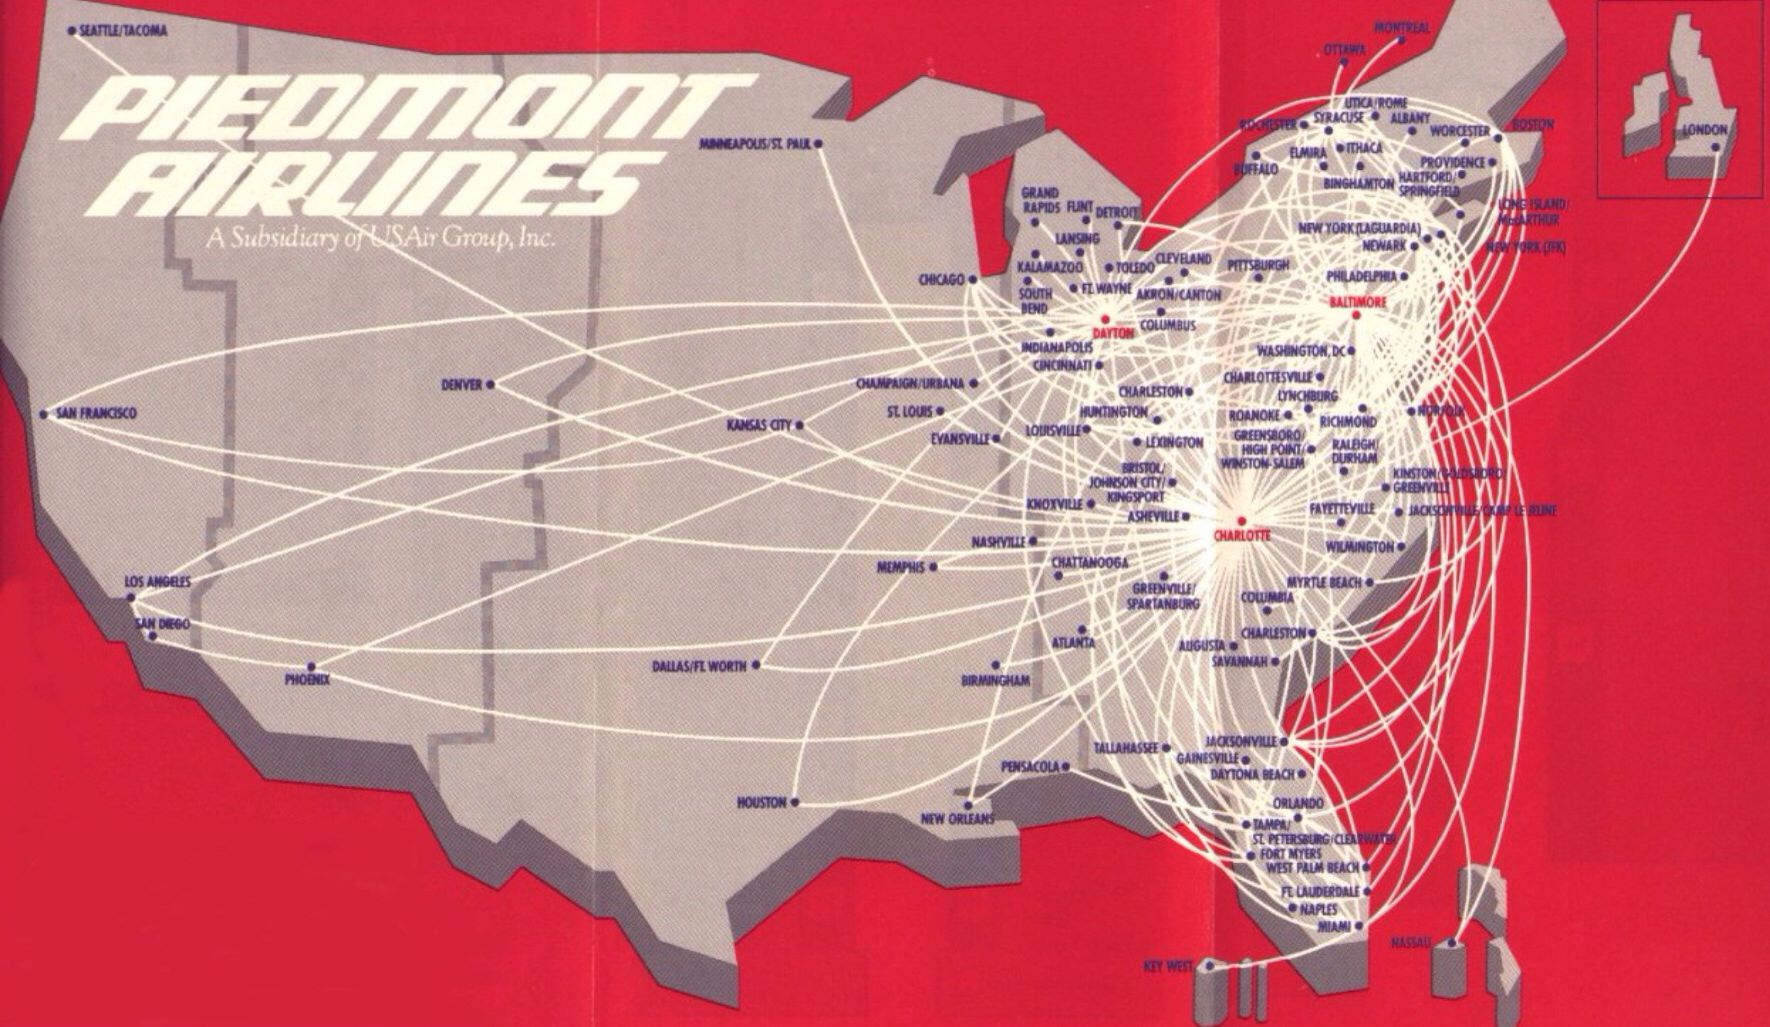 Vintage Route Map Of Piedmont Airlines Cross Country